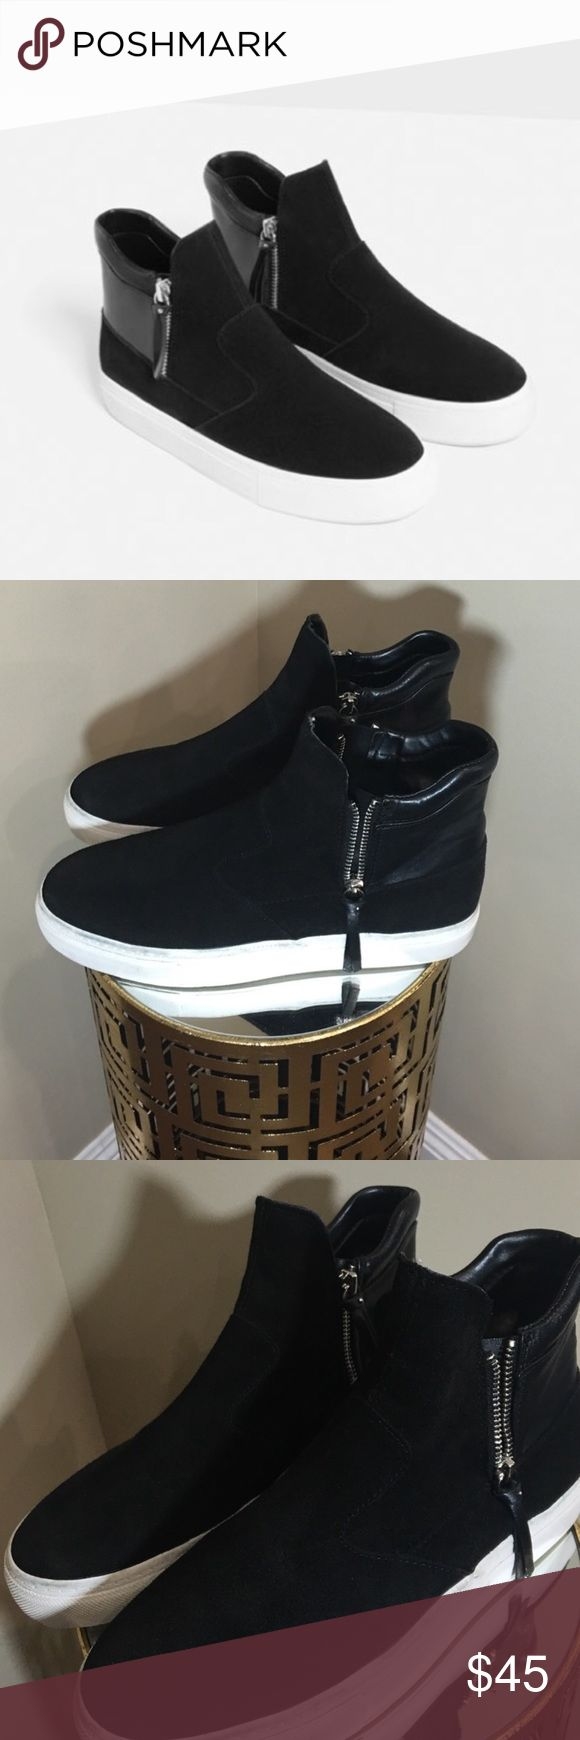 Zara high top sneakers Zara flat black leather high top sneakers with zippers on the side. Zara Shoes Sneakers